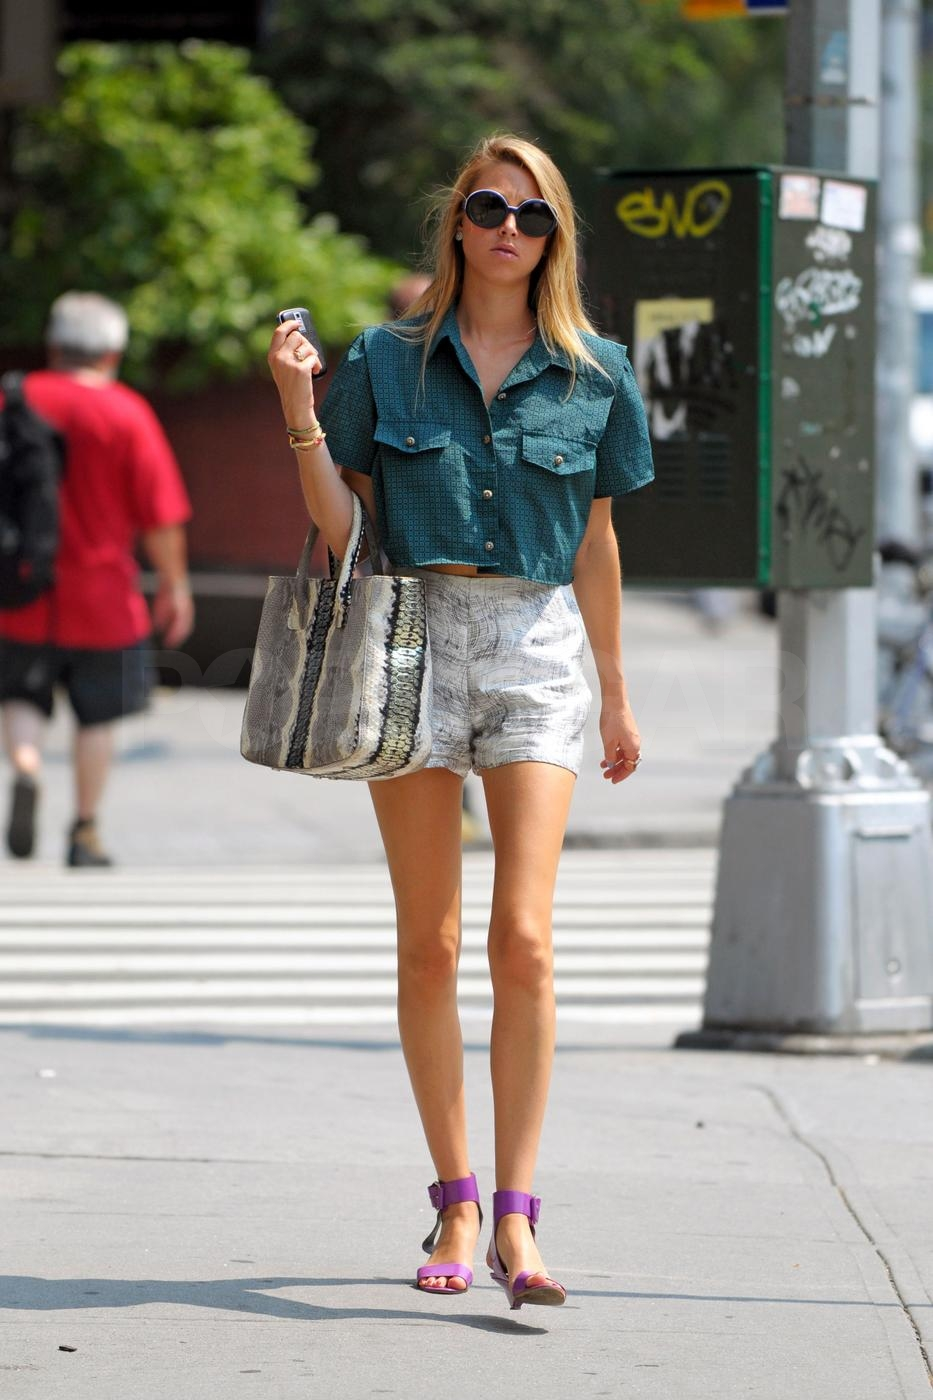 Photos of Whitney Port in NYC